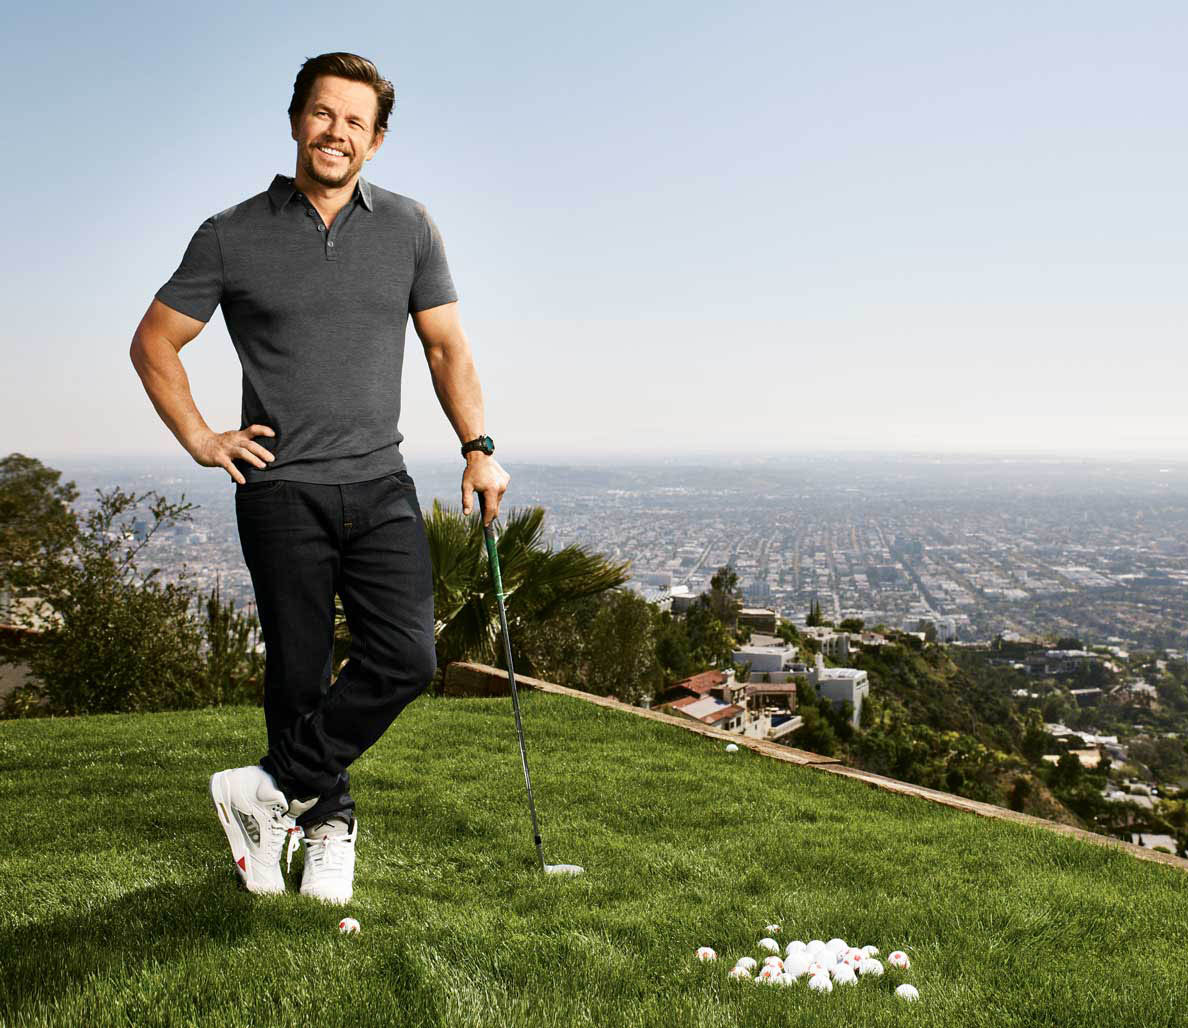 Mark Wahlberg in the May 2016 issue of Men's Fitness. Photo by Jeff Lipsky